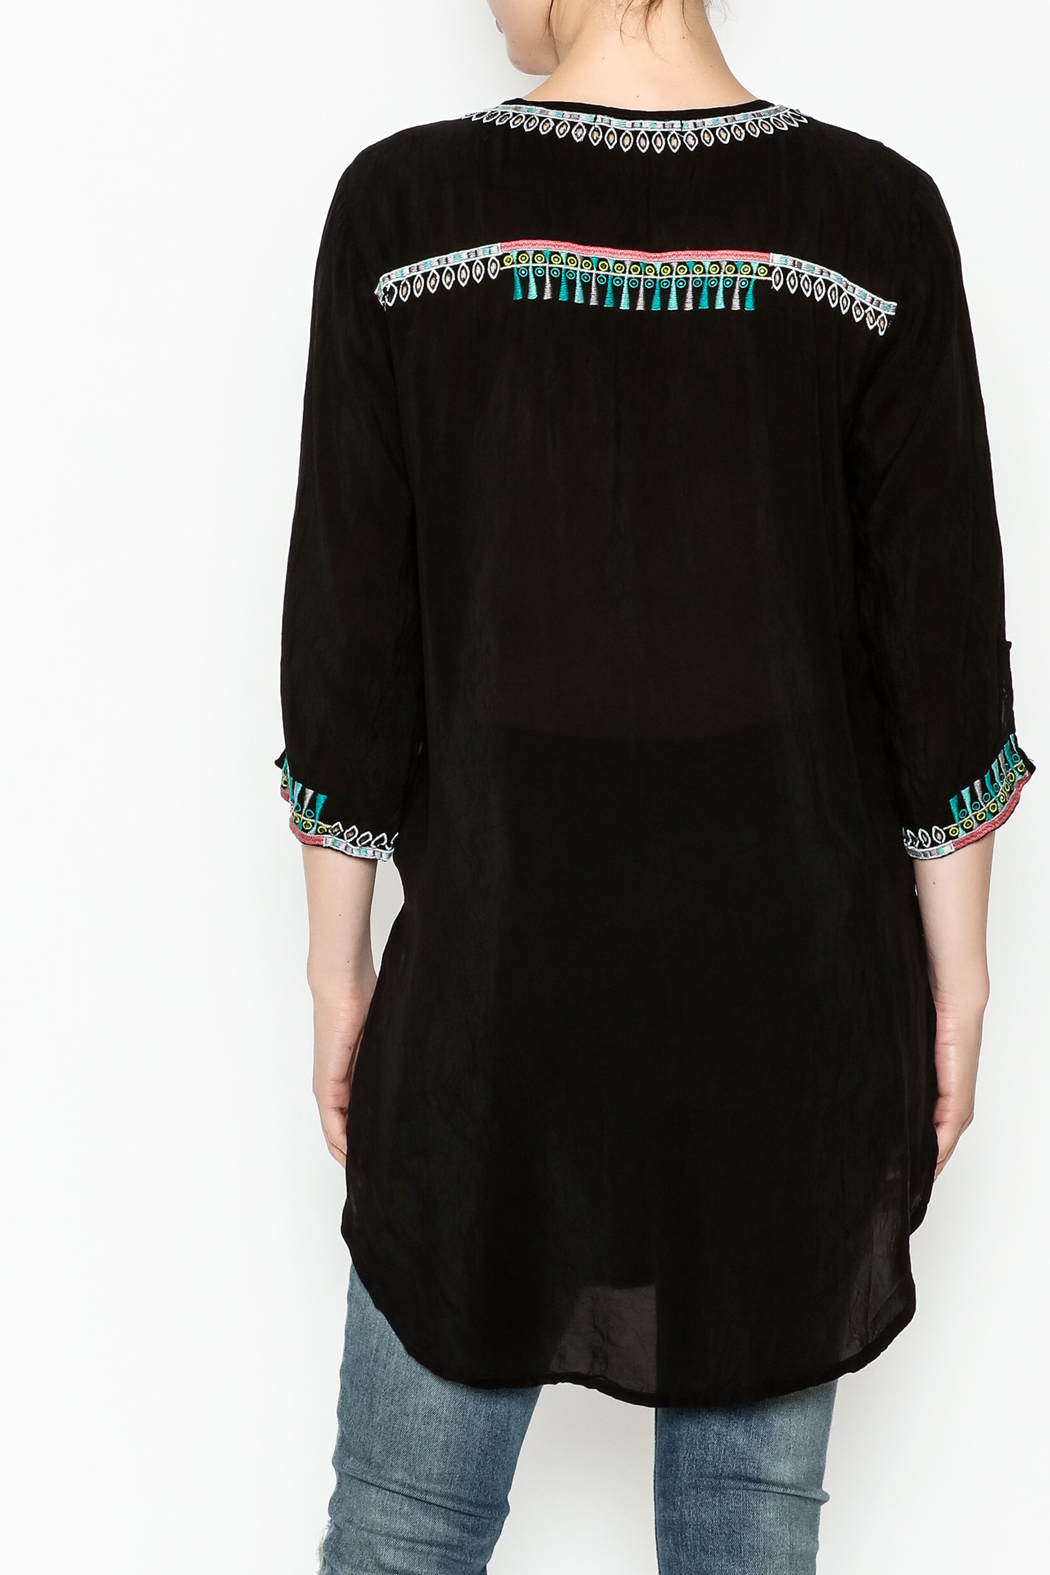 Johnny Was Zivelly Embroidered Tunic - Back Cropped Image